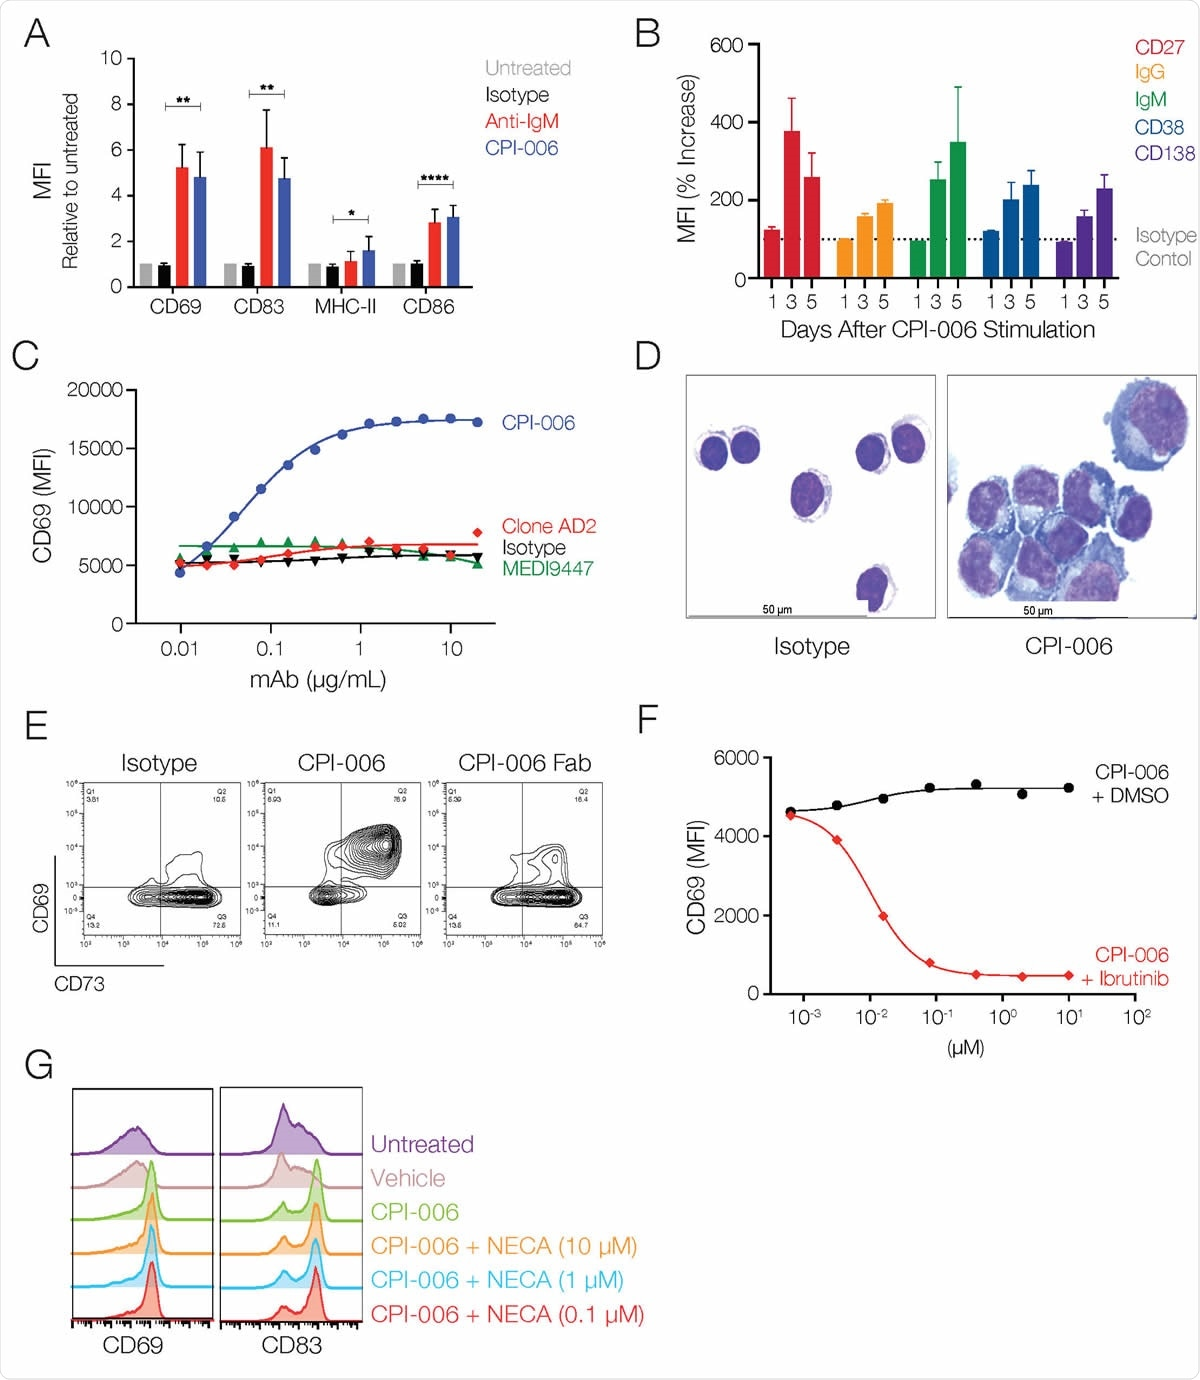 CPI-006 directly activates B lymphocytes and induces maturation into antibody secreting plasmablasts in vitro. (A) Purified B cells from 3-5 healthy donors were incubated overnight with human IgG1 isotype control or CPI-006 (10 μg/mL) or anti-IgM microbeads, a positive control for BCR stimulation. Expression of activation markers CD69, CD83, CD86, or MHC-II was measured by flow cytometry. B) Time dependent increases in the expression of CD27, IgG, IgM, CD38, and CD138 on purified B cells cultured in the presence of CPI-006 or isotype control (1 μg/mL). Mean fluorescence intensity (MFI) was determined for each marker and was normalized to the untreated or isotype control for each donor. C) B cell activation is unique to CPI-006 as other anti-CD73 antibodies do not induce CD69 expression. Expression of CD69 (MFI) was measured by flow cytometry. D) Representative images of purified B cells cultured with isotype control (left panel) or CPI-006 for 2 days. E) Purified B cells were incubated overnight with 10 μg/mL human IgG1 isotype control or CPI-006 or equimolar CPI-006 Fab. CD69 and CD73 were measured on B cells by flow cytometry. (F) Human PBMCs were incubated overnight with a fixed concentration of CPI-006 (10 μg/mL) along with ibrutinib or vehicle control over a range of concentrations. Expression of CD69 on B cells (CD19POSCD3NEG) was measured by flow cytometry. G) Human PBMCs were incubated overnight with 10 μg/mL CPI-006 with or without NECA over a range of concentrations or 10 μM APCP. Expression of CD69 on B cells (CD19+CD3-) was measured by flow cytometry and MFI is reported. Error bars represent mean ± SD. *p<0.05, **p<0.01 as determined by t-test.